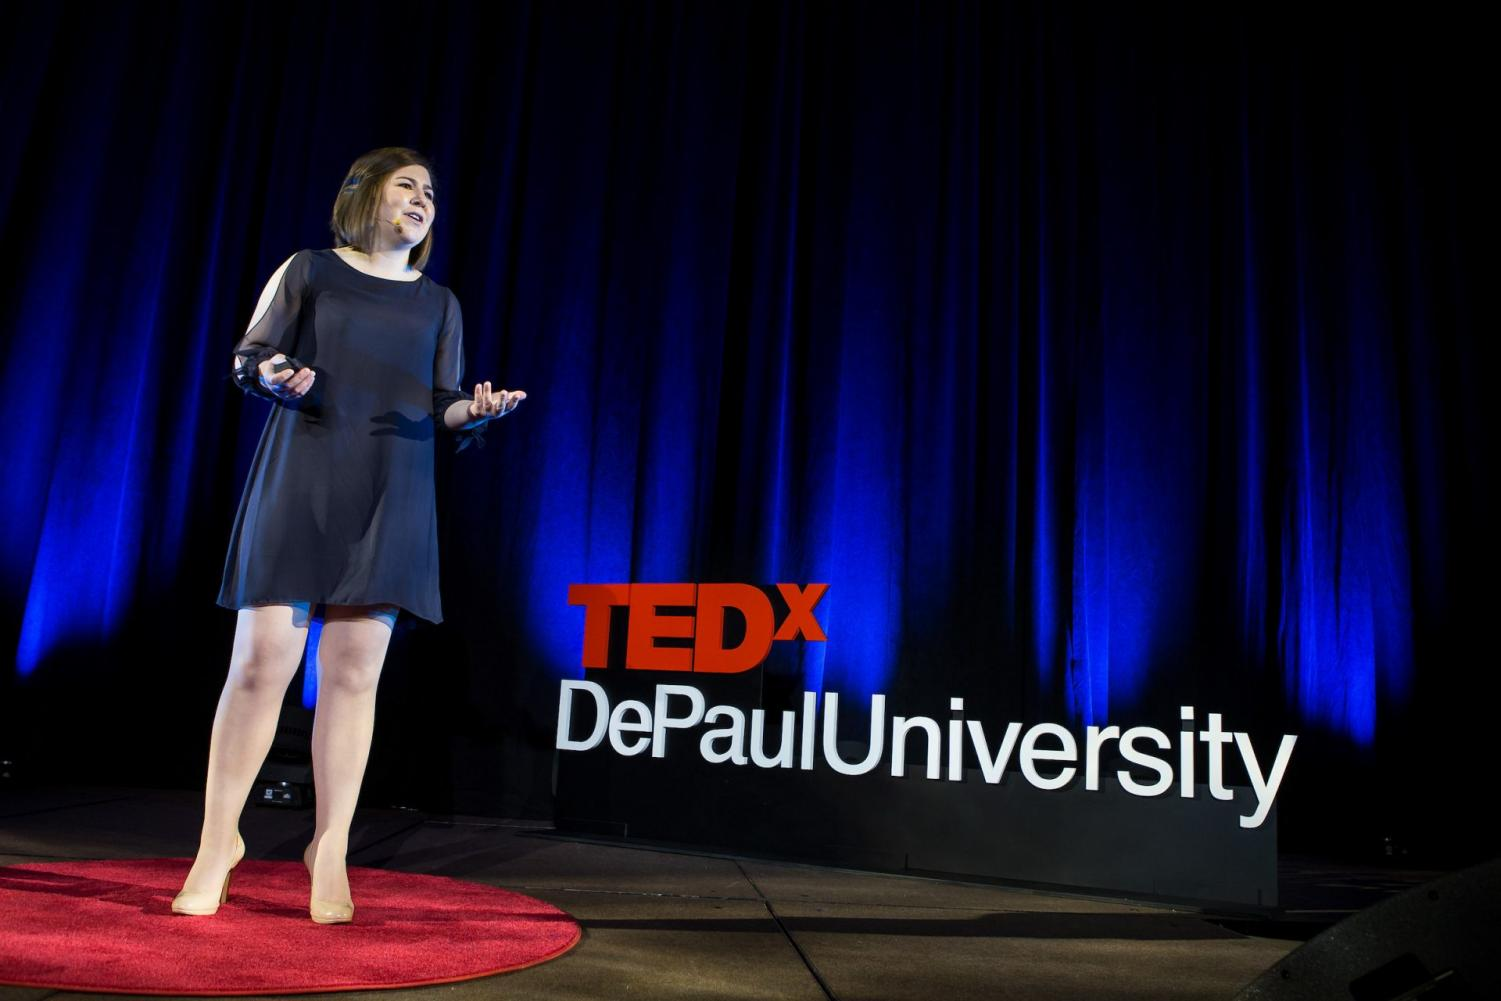 """In a performance from 2017, alumna Nelly Mueller presents her speech """"Careening Out of Complacency"""" at TEDxDePaulUniversity. The course prepares students for performance and public speeches in a professional and recognizable environment."""